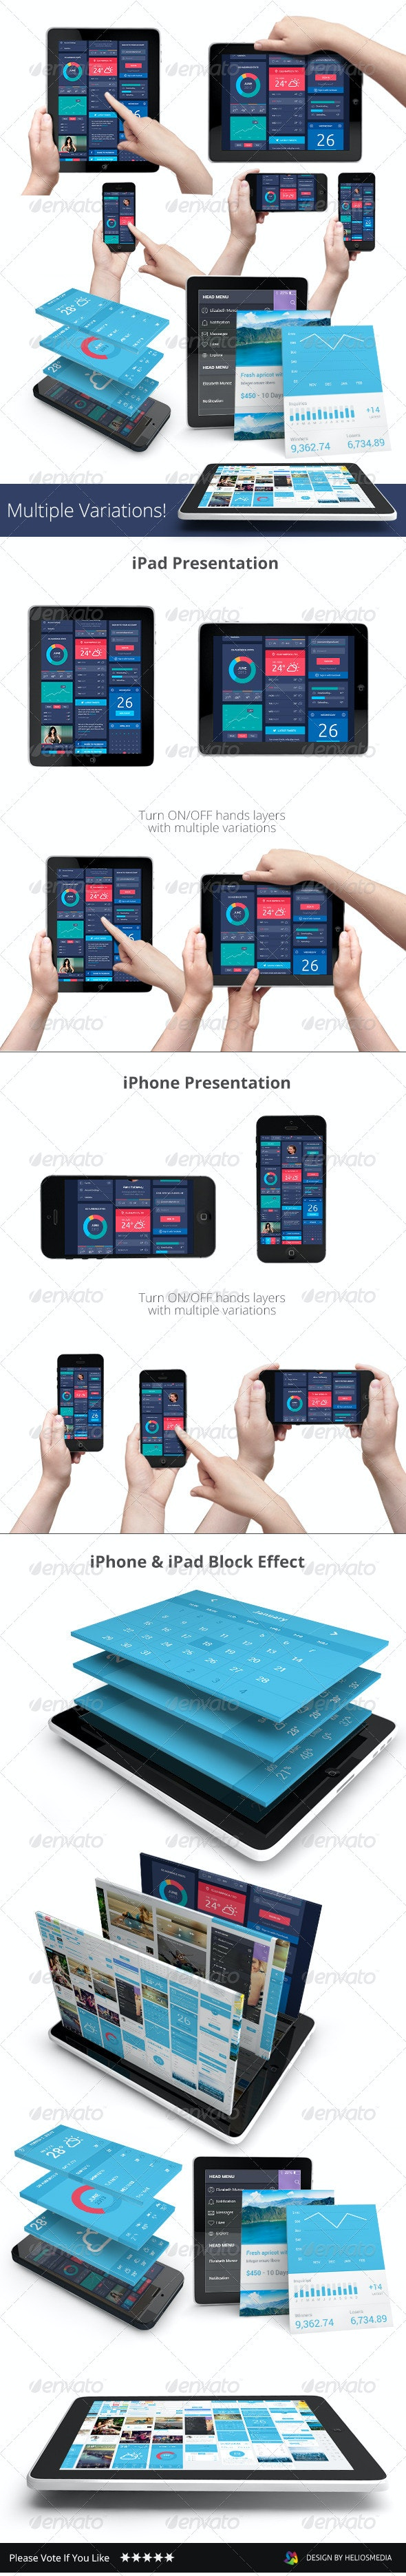 App UI Phone & Tablet Mock-up / Hands Holding - Mobile Displays